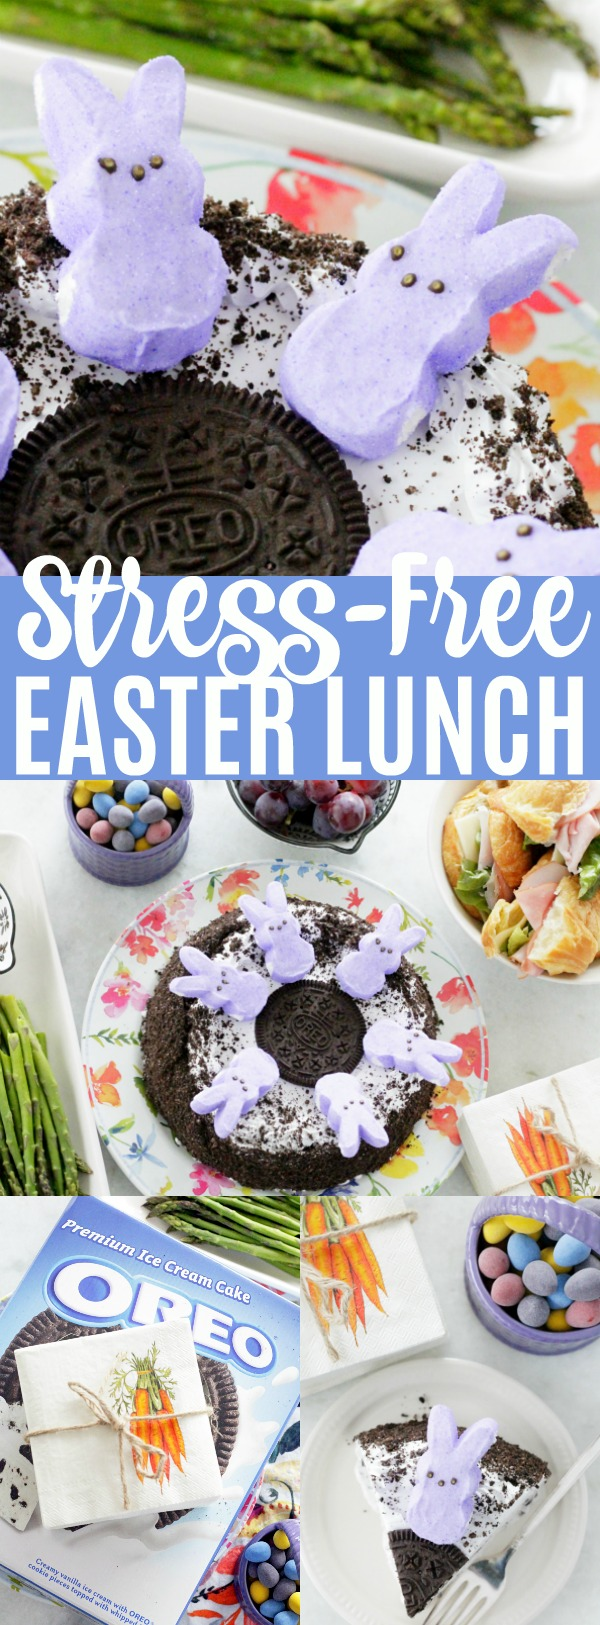 Plan the Ultimate Stress-Free Easter Lunch | Foodtastic Mom